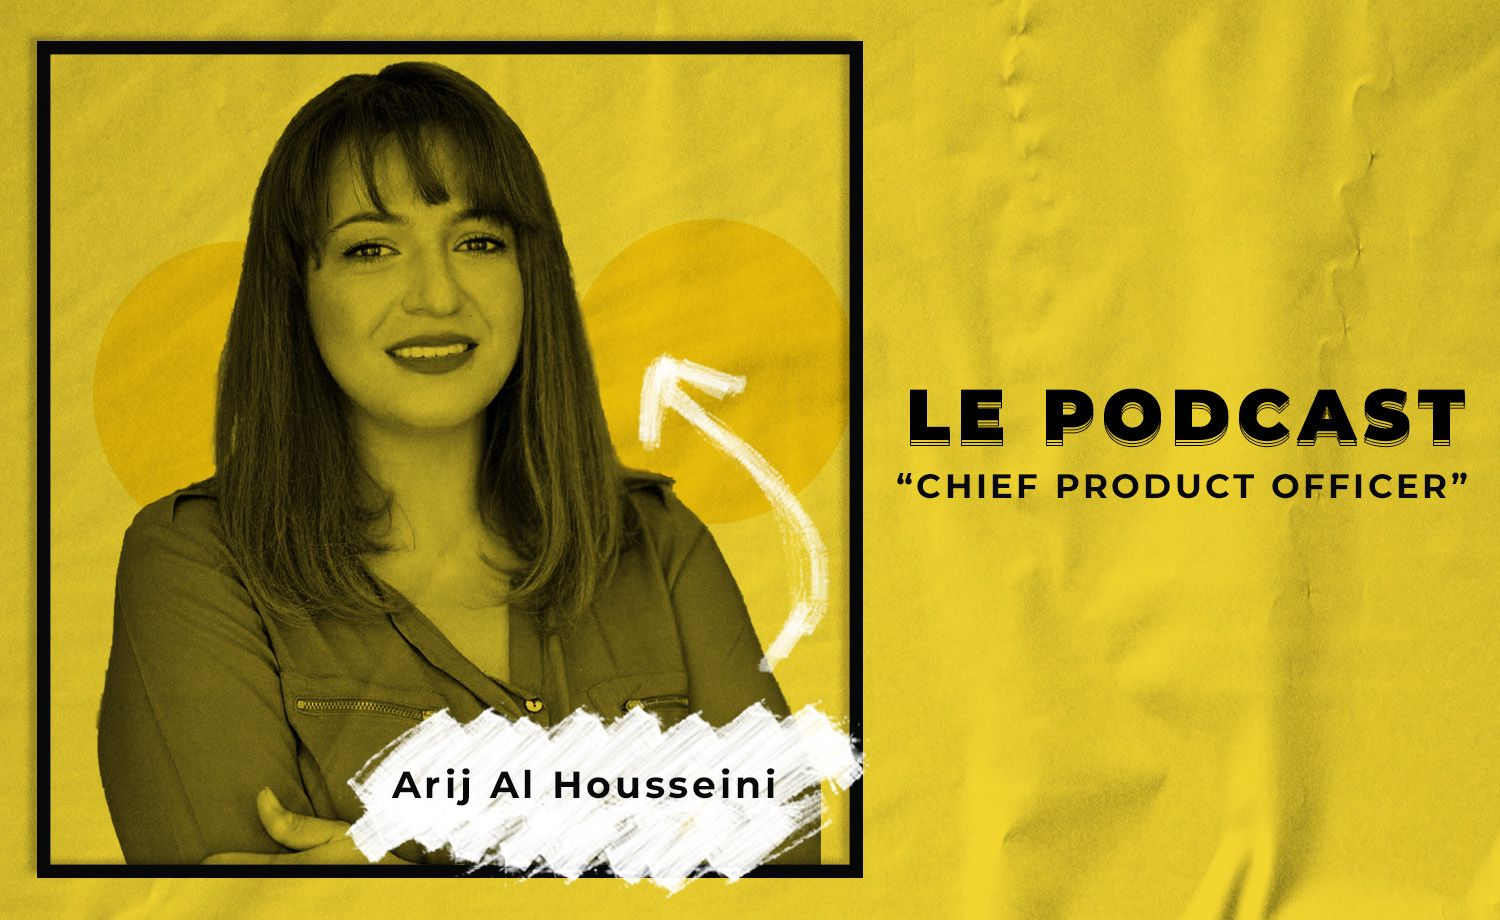 Le Podcast: Arij Al Housseini - Chief Product Officer